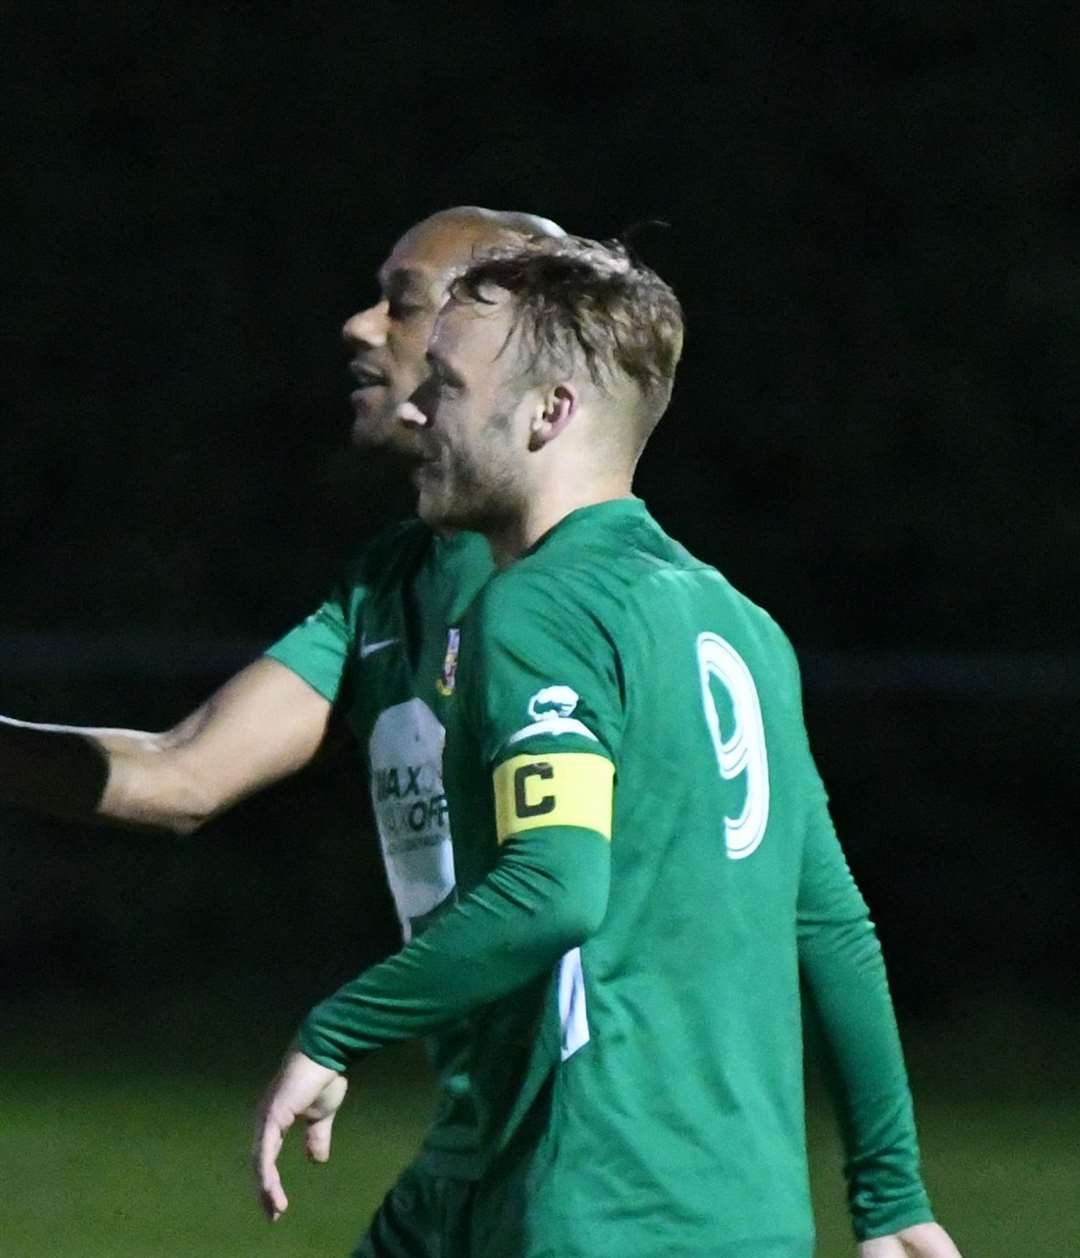 Robbie Preira and Jordan Smith both scored twice for Cottesmore on Saturday. (18827832)